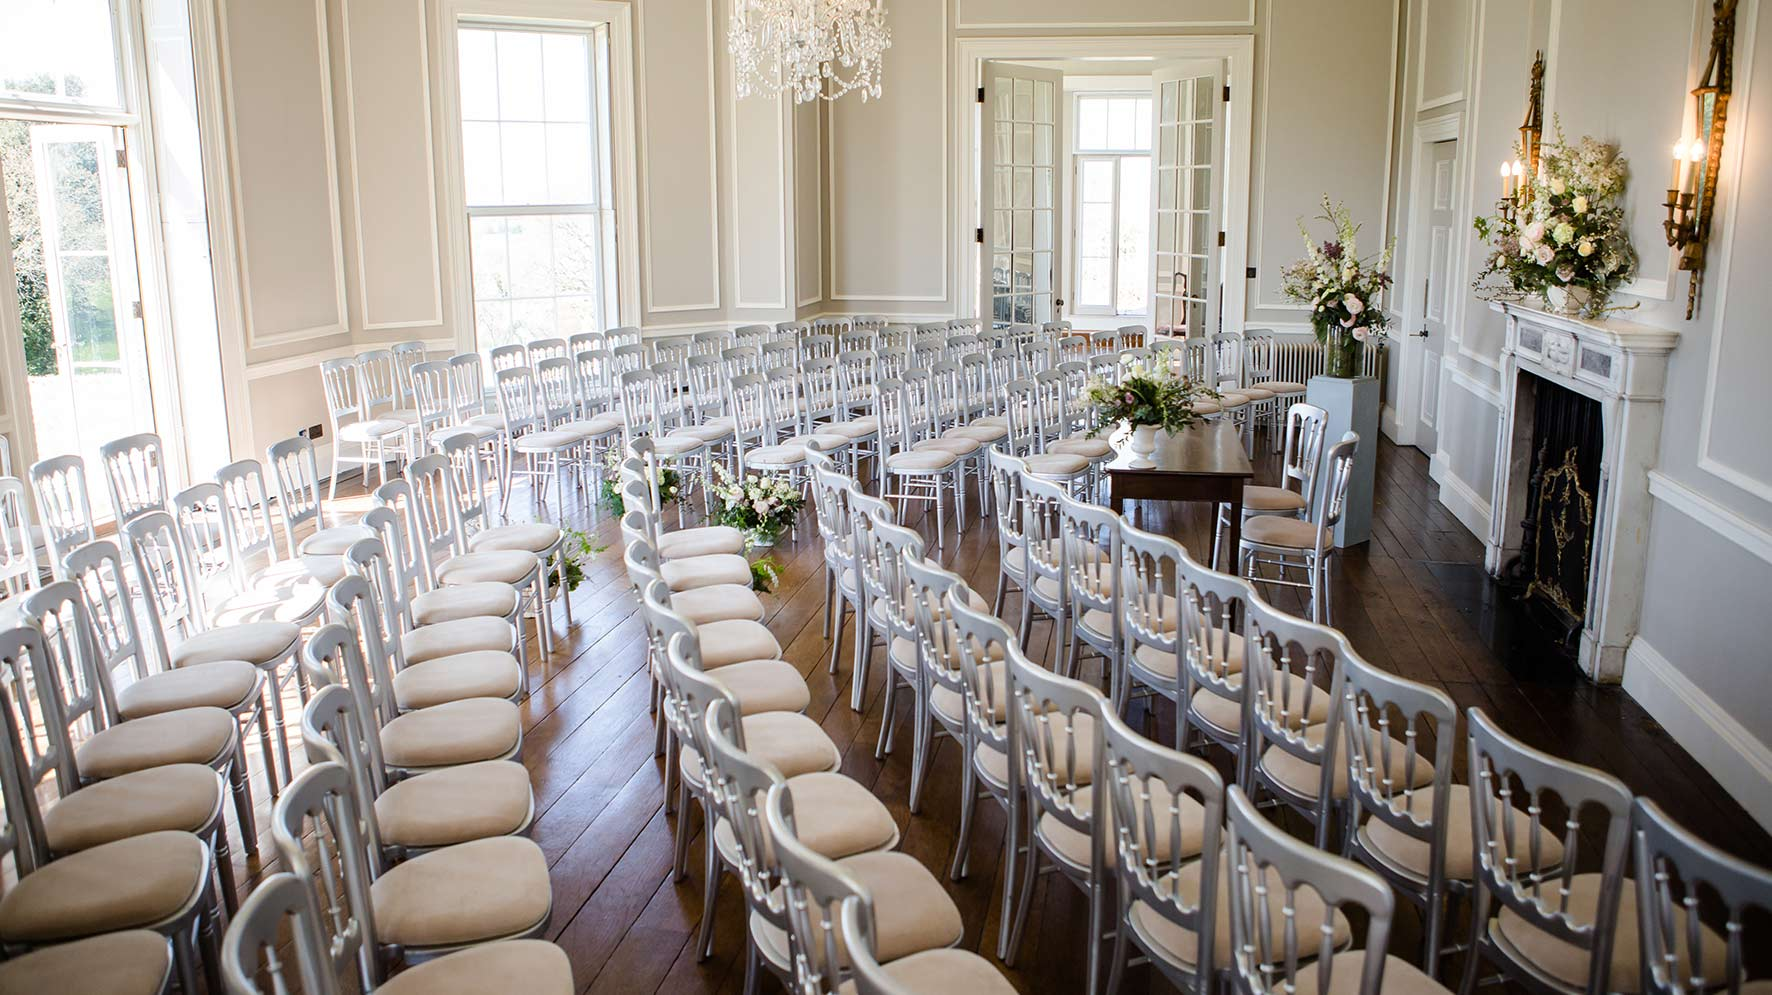 Hale Park House wedding ceremony and reception space